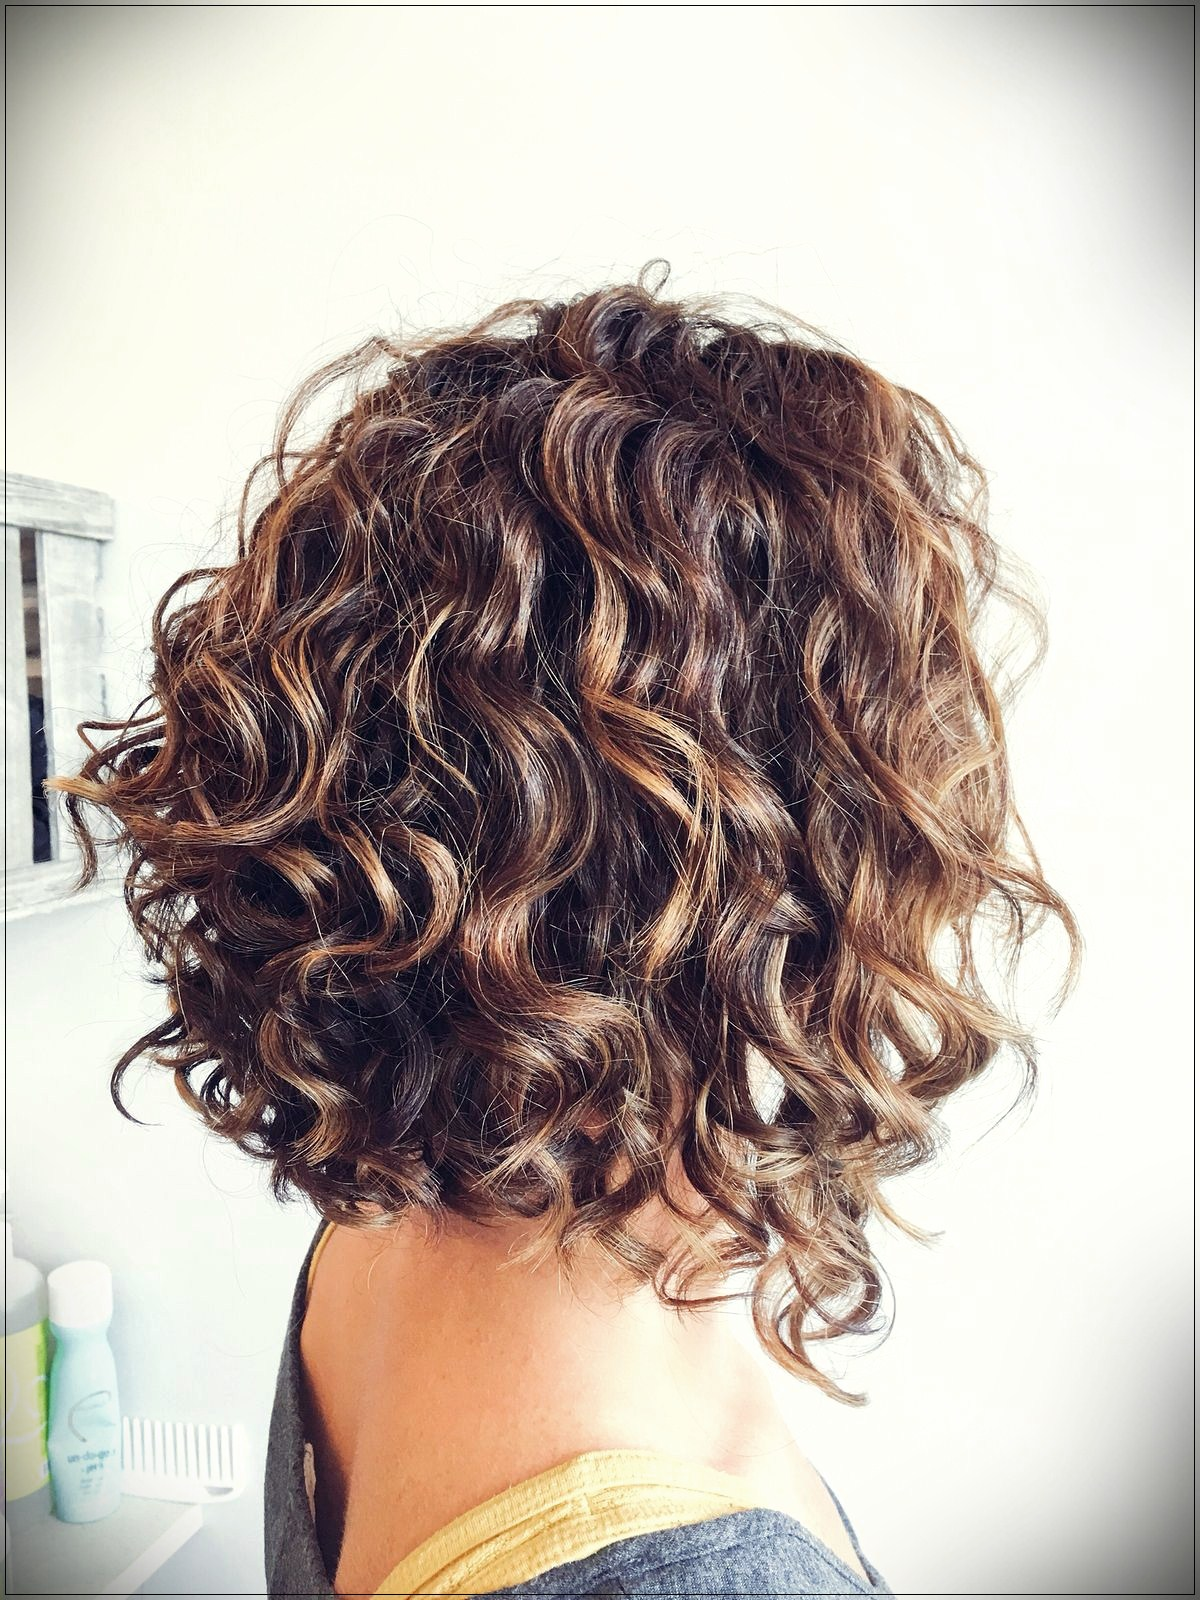 You Will Not Find These Layered Curly Hair Ideas For 2018 Anywhere